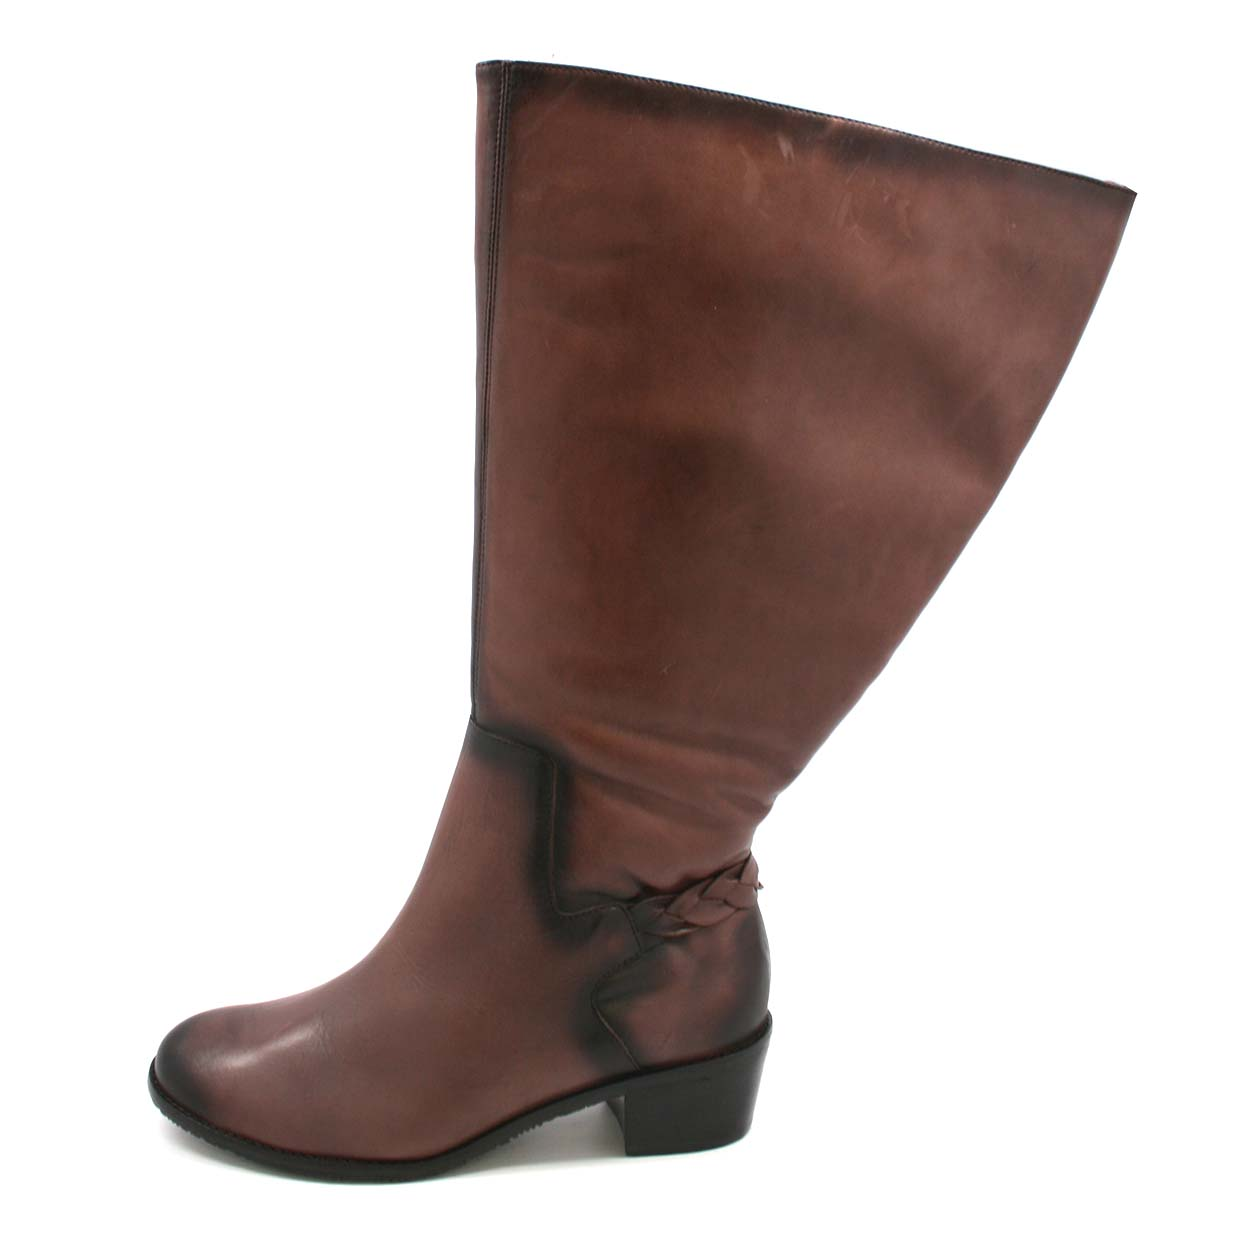 Extra wide calf boots for women leather